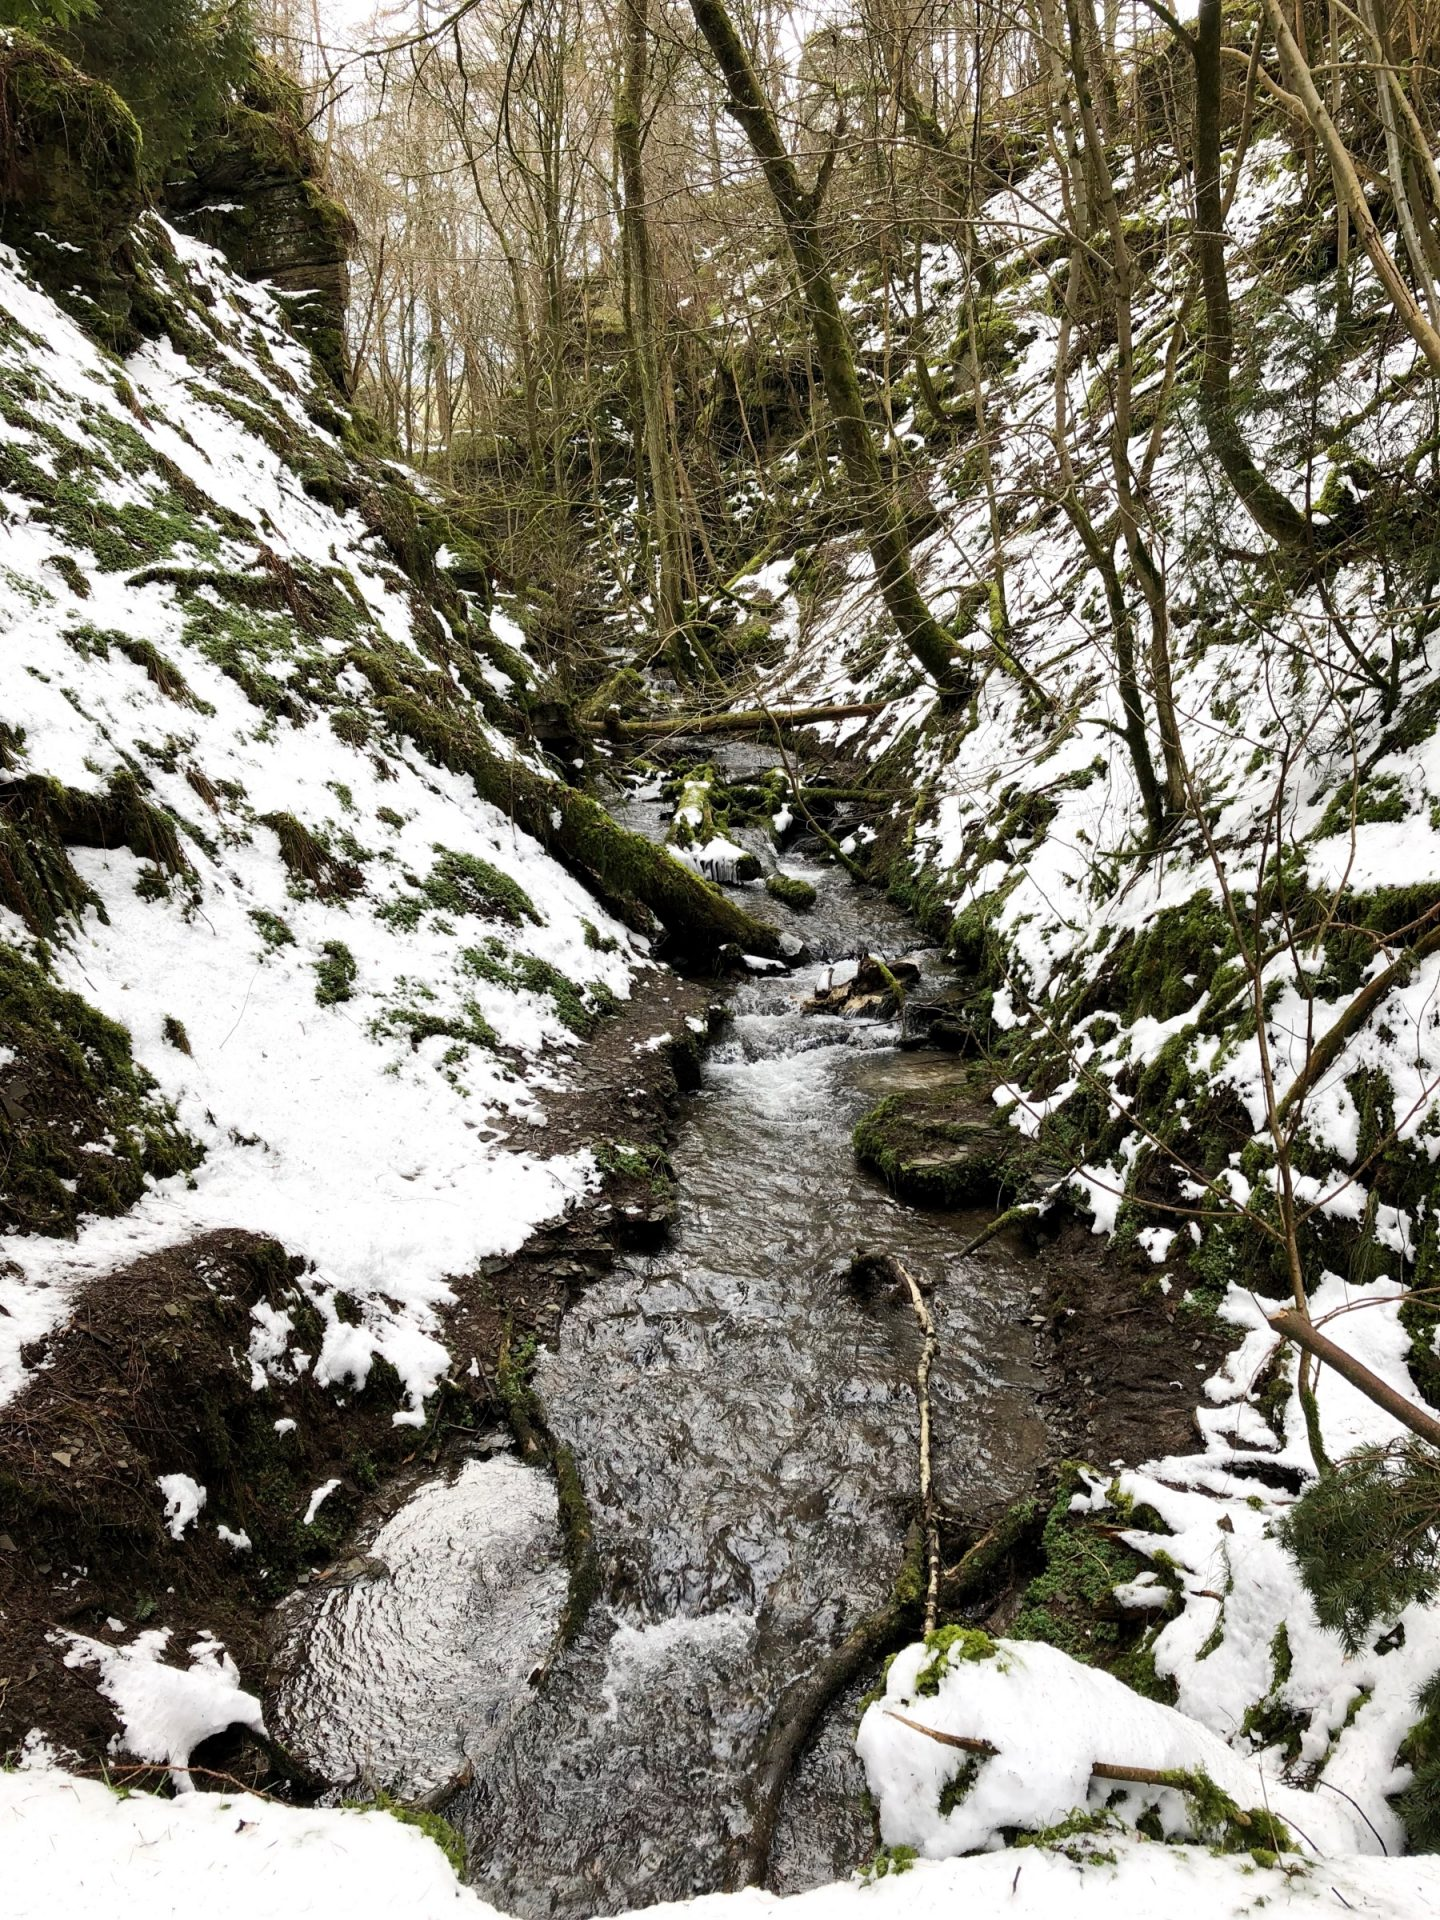 A day at water break its neck - snow surrounding waterfall view